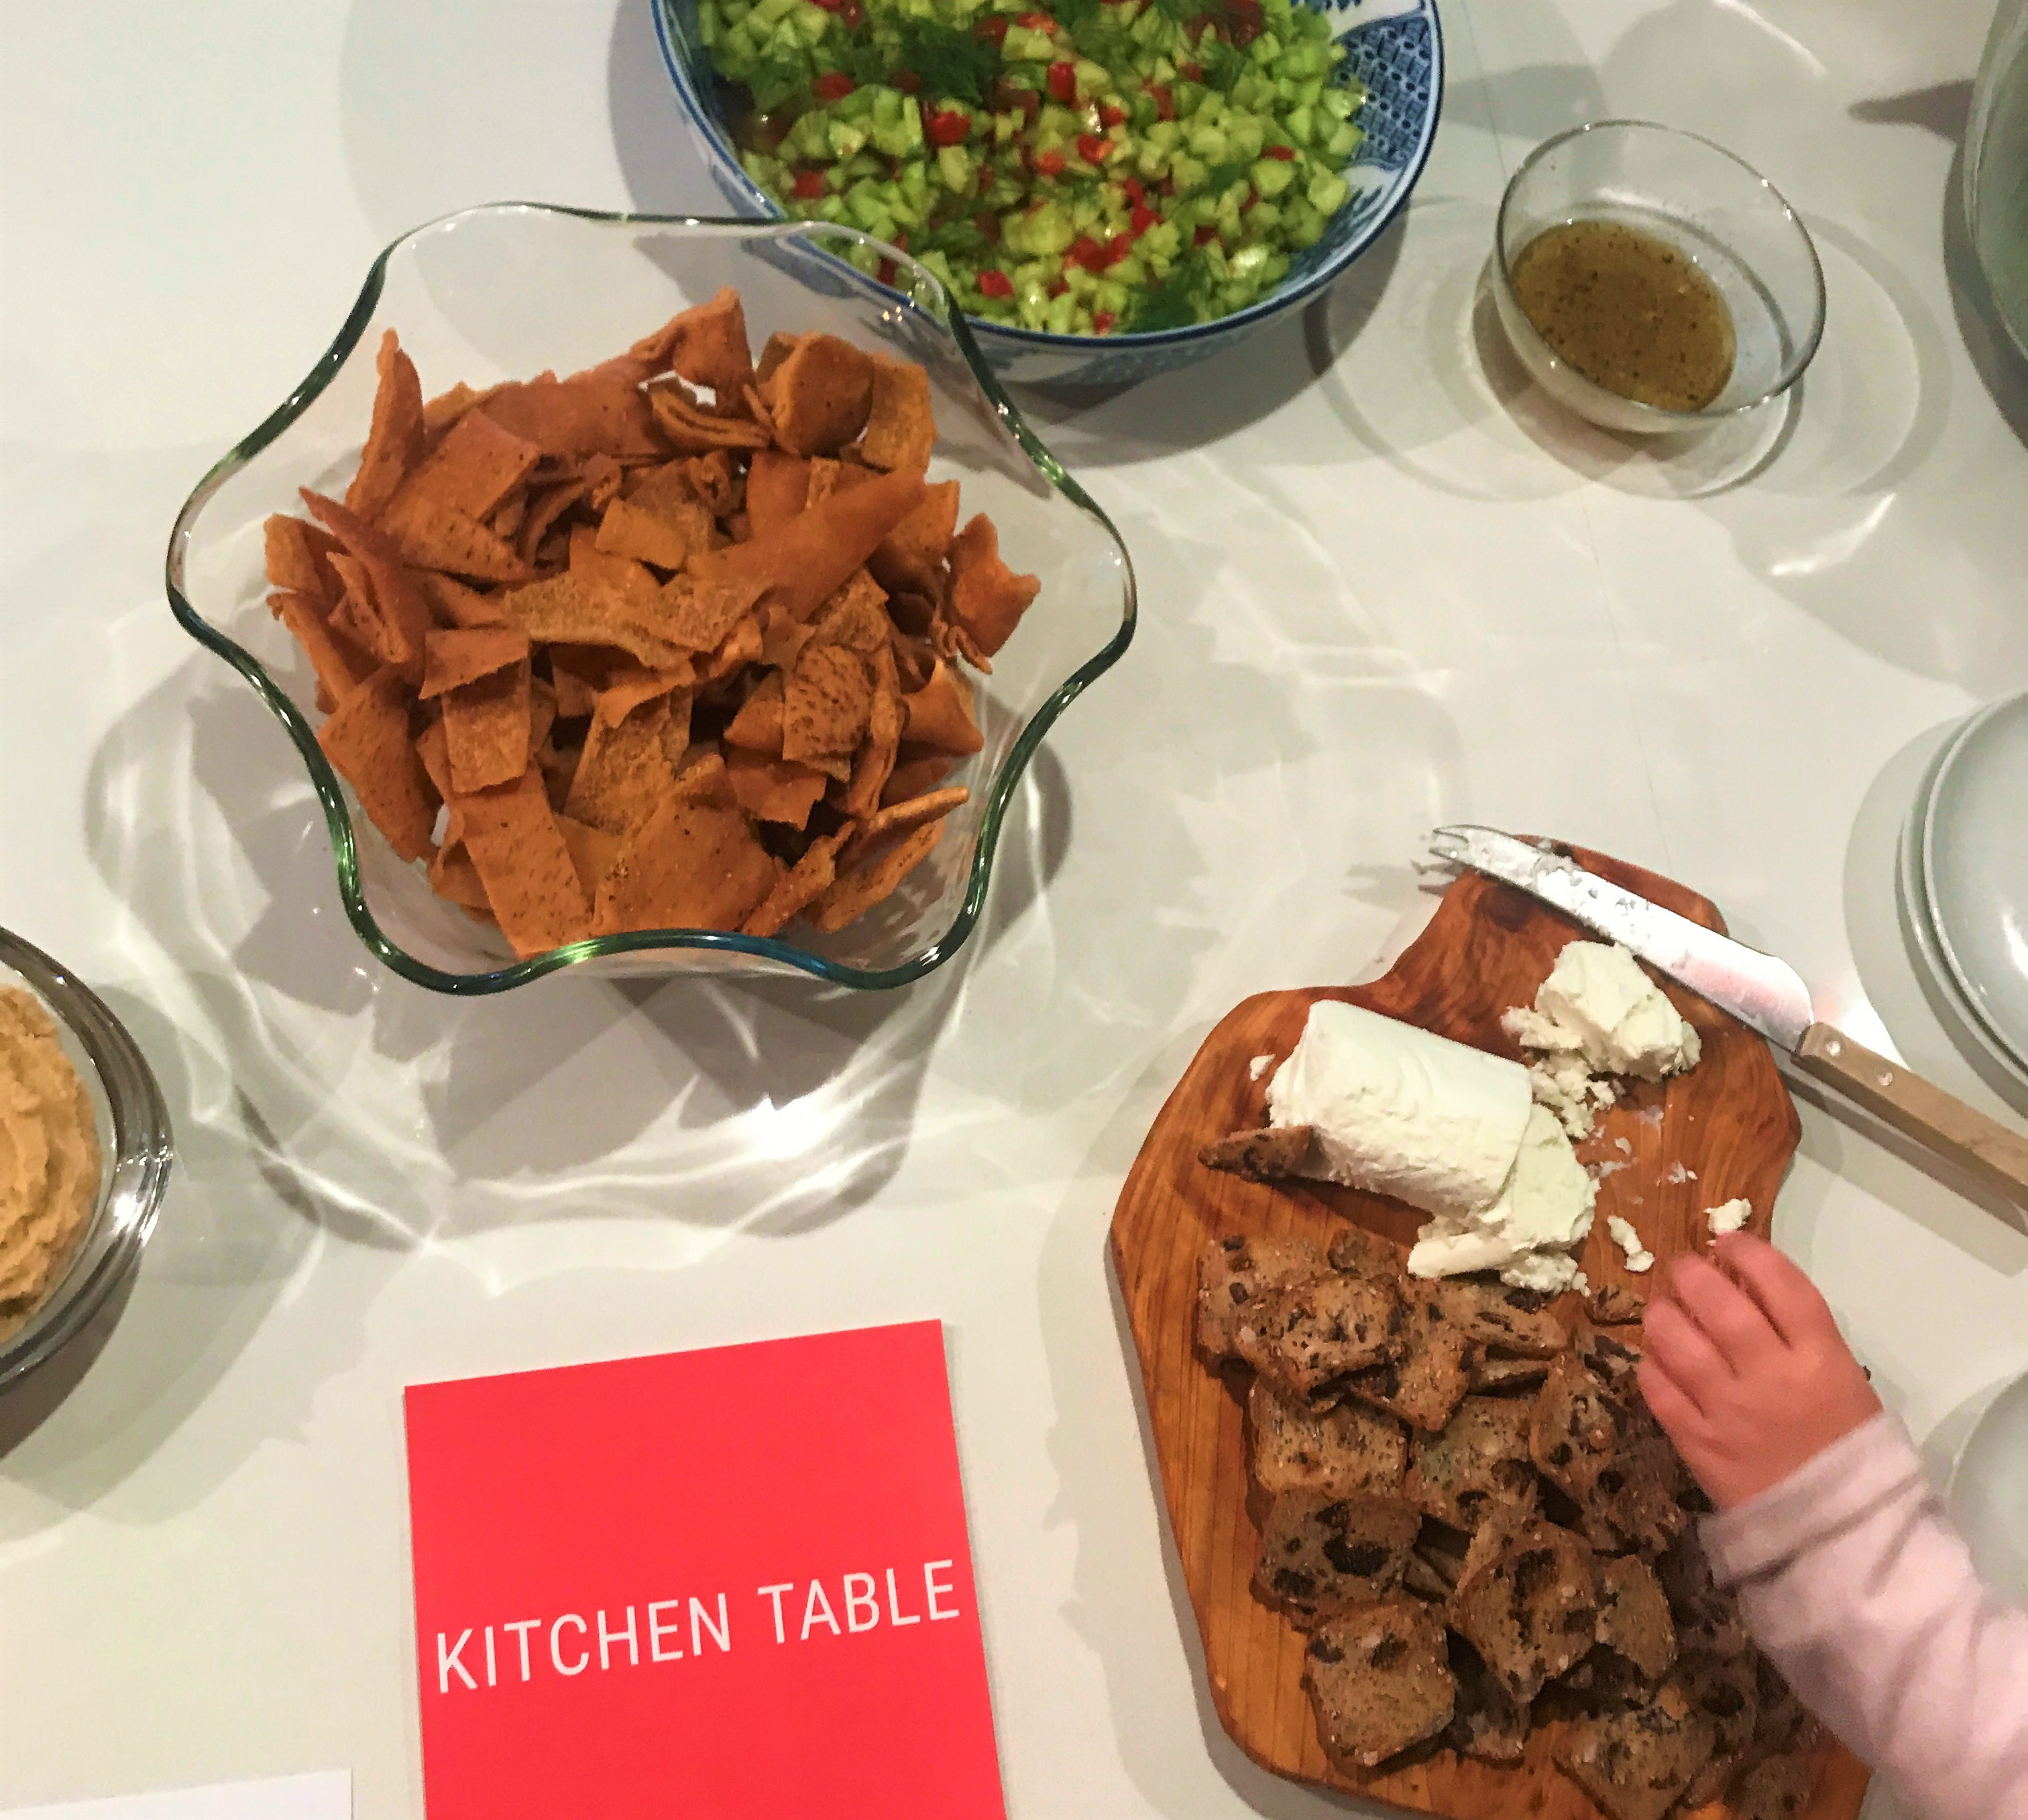 The Kitchen Table App Cook-Off at New School of Cooking - The ...